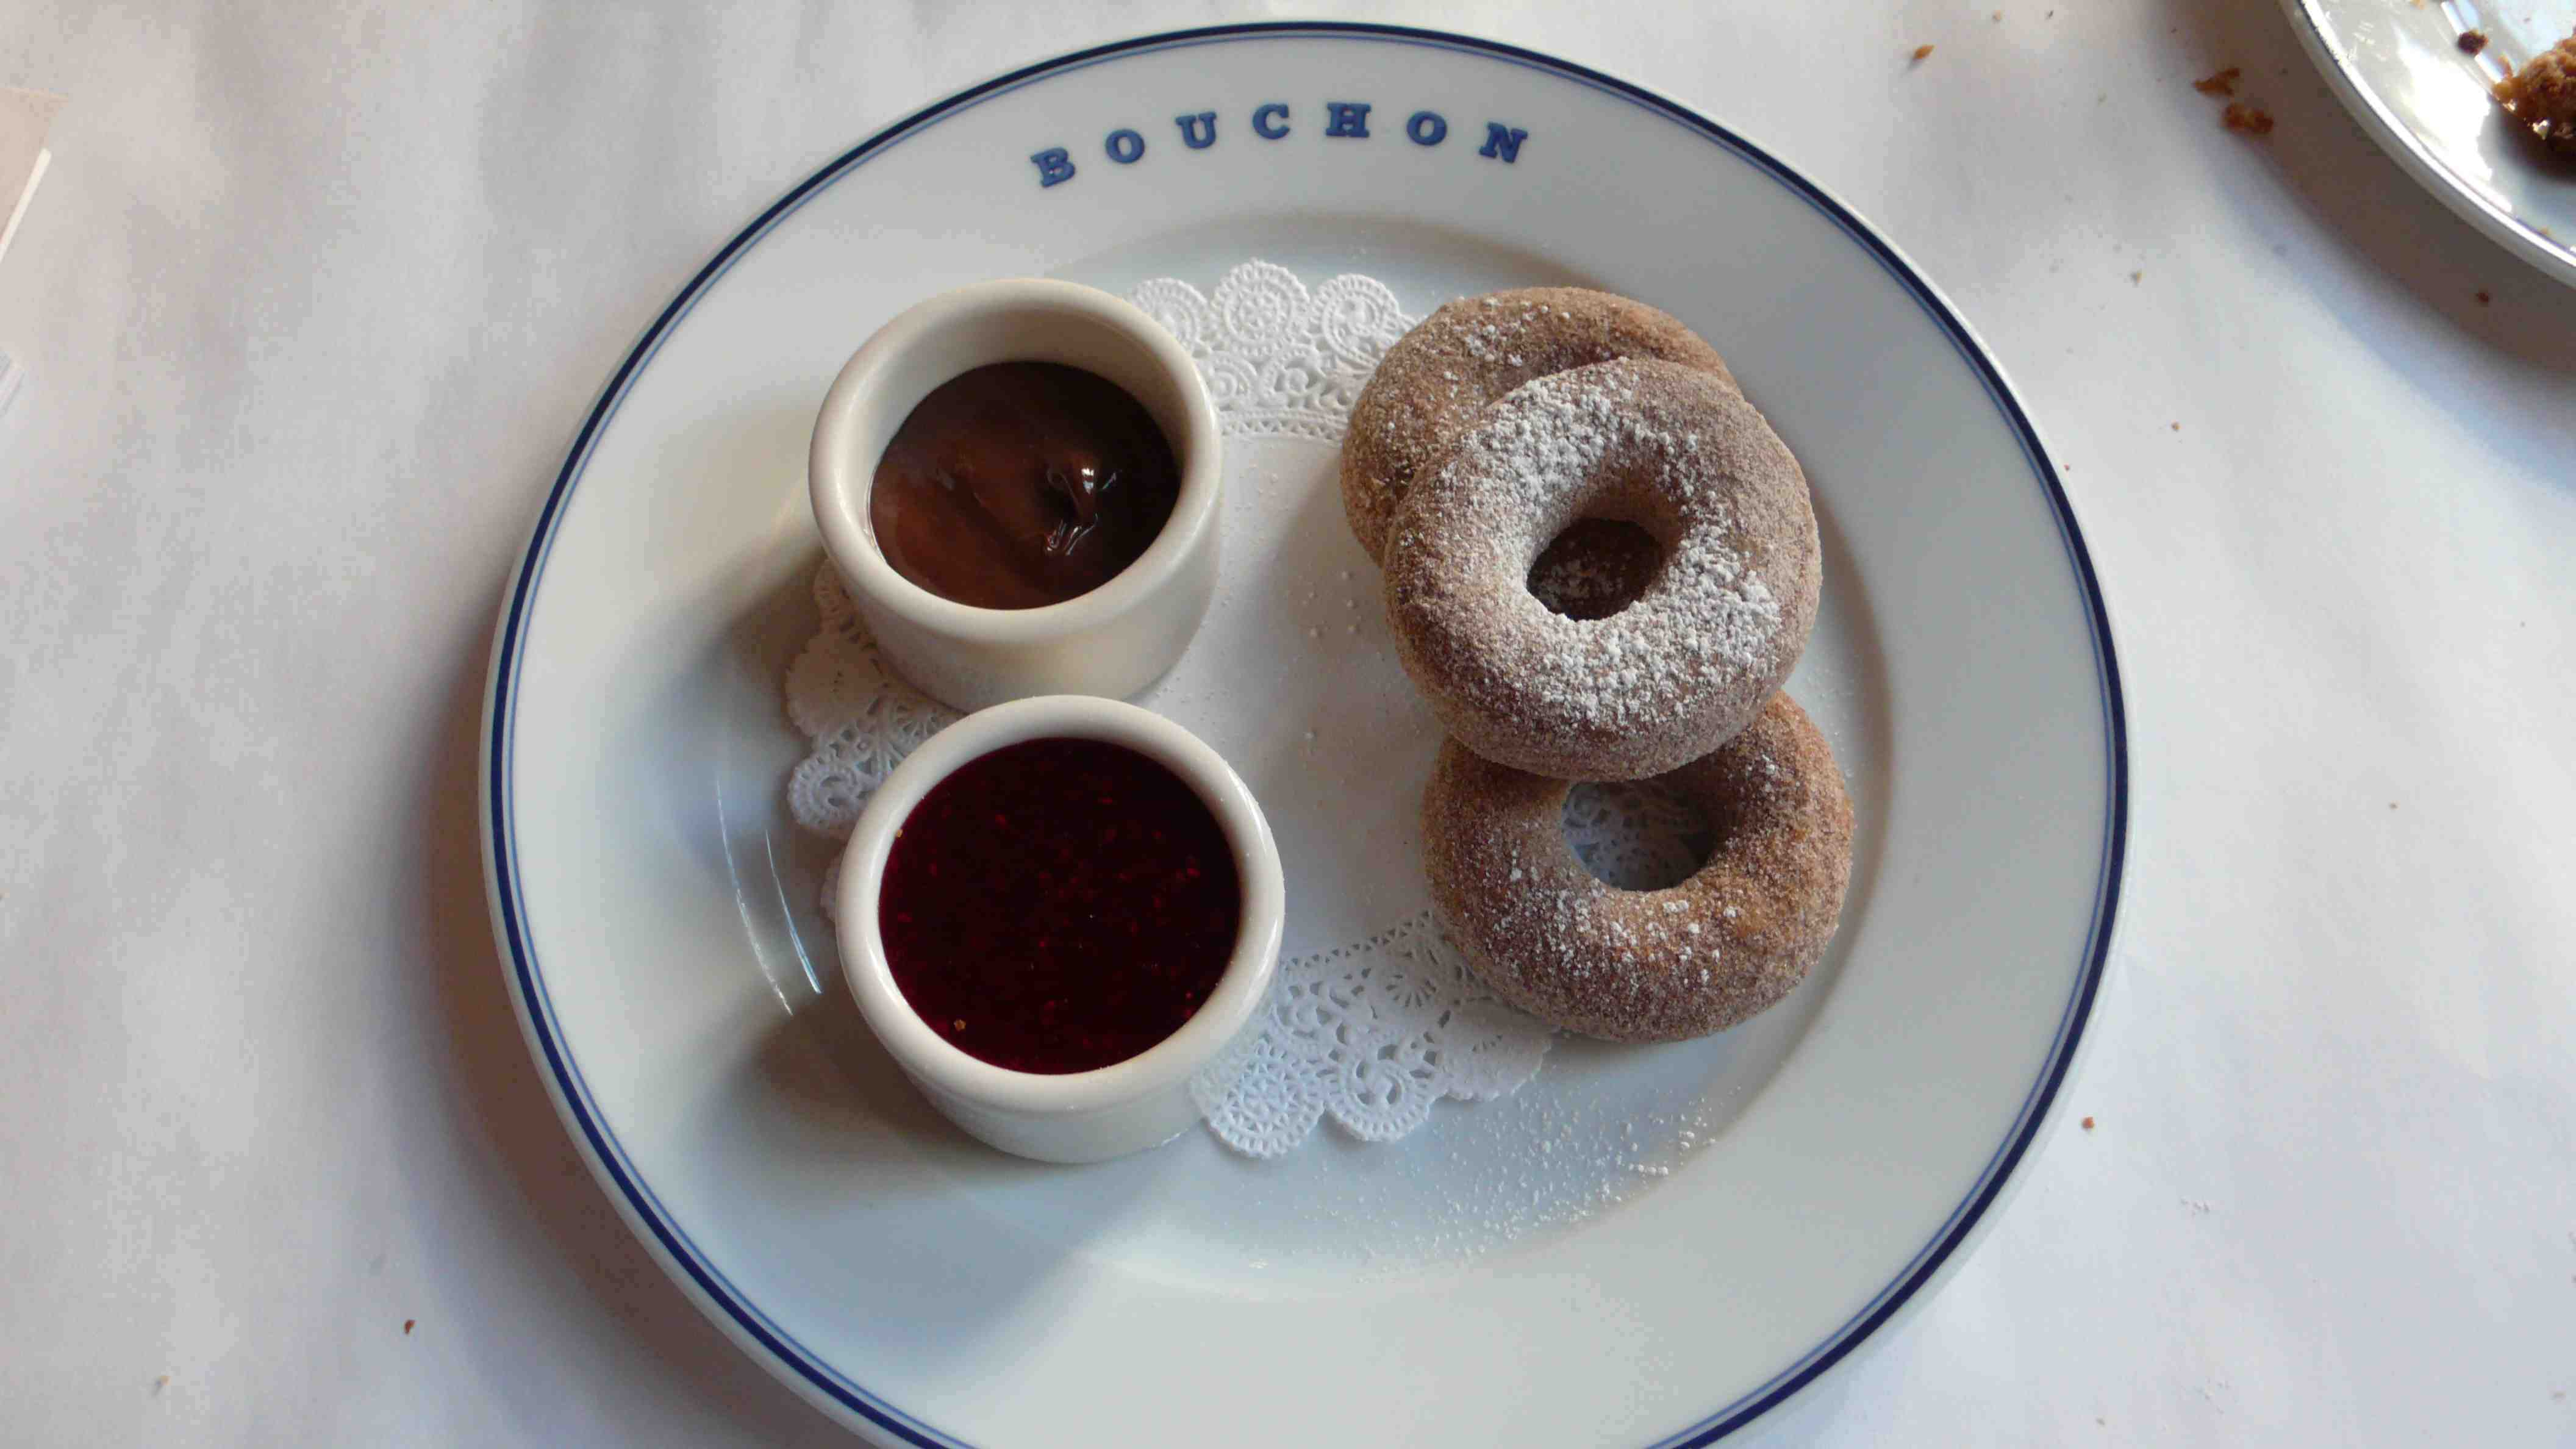 Bouchon Donuts